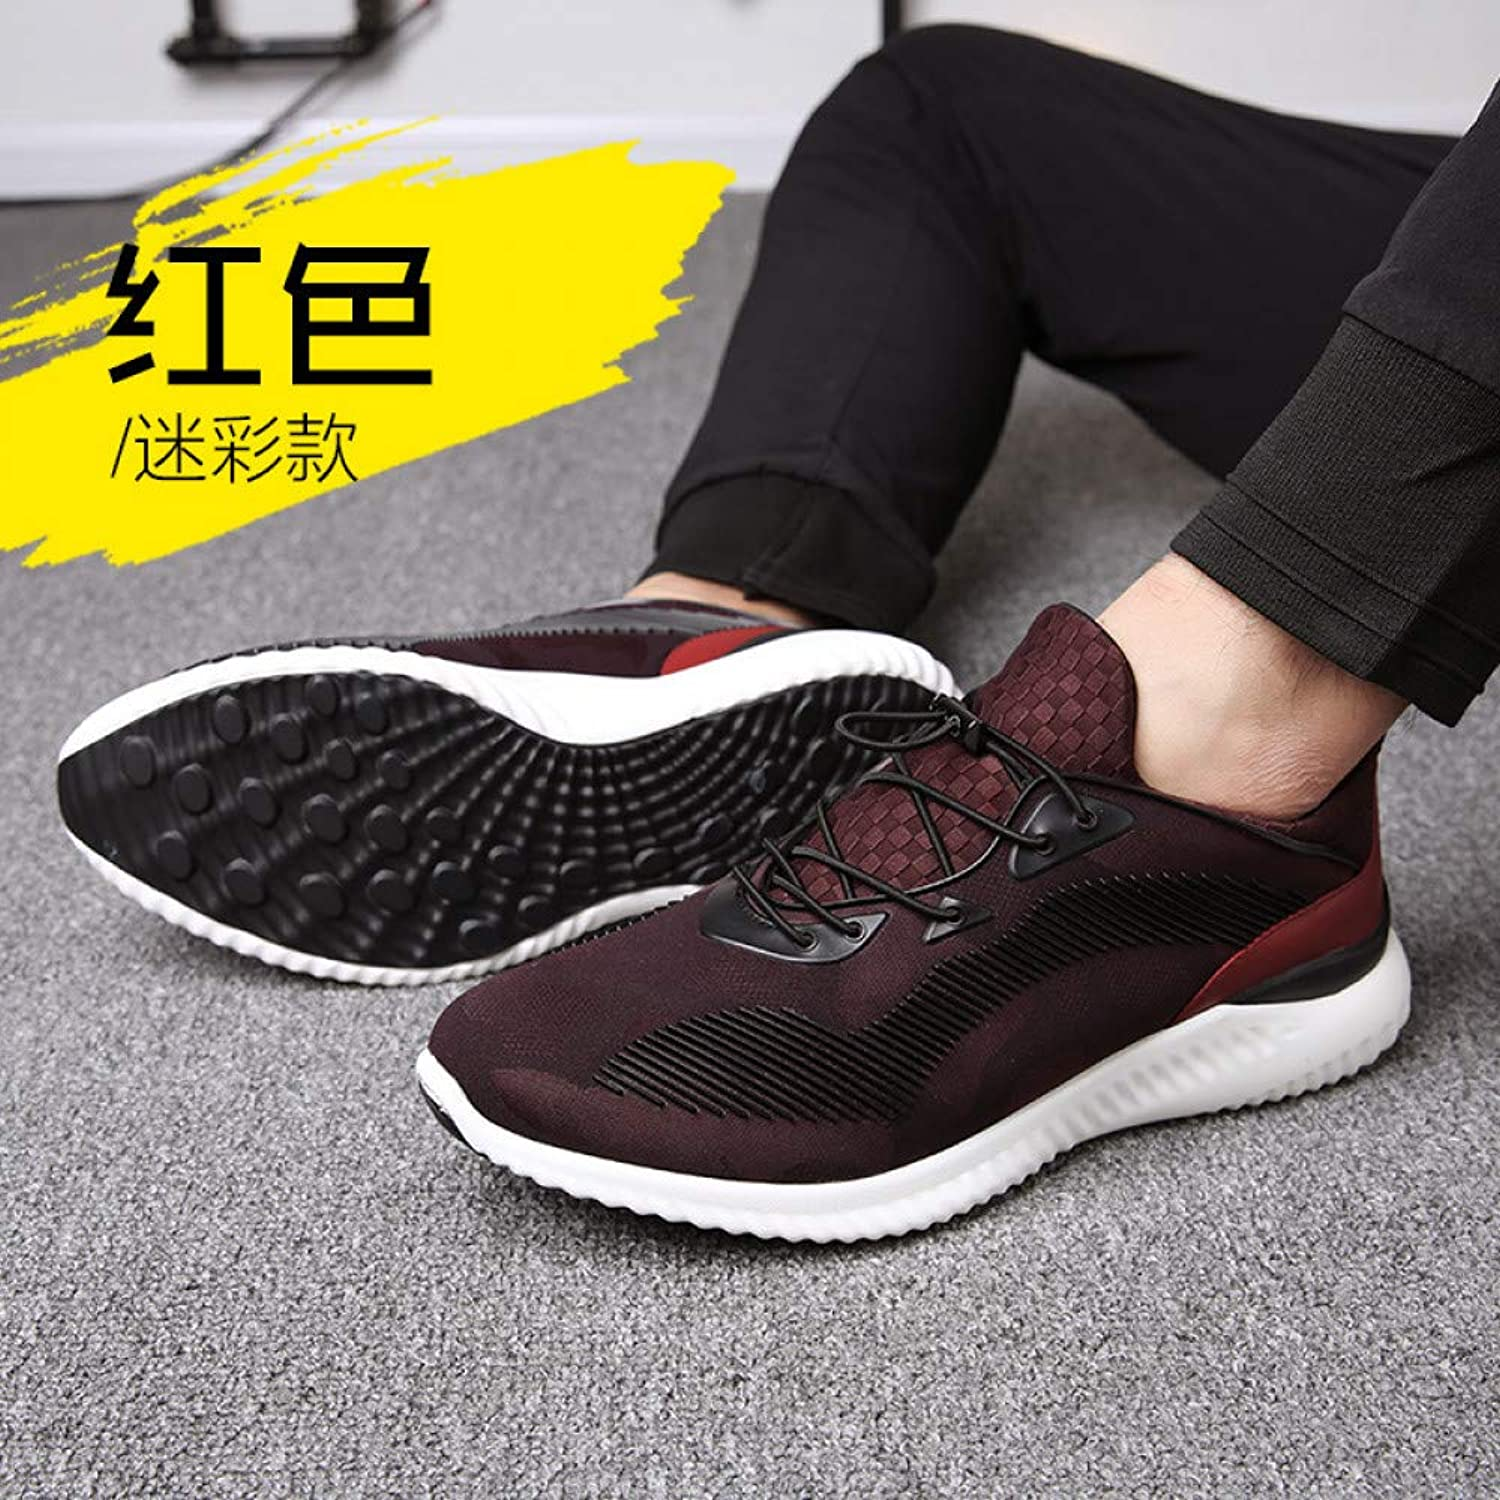 Hasag Sports shoes New Men's shoes Sports Breathable Men's Casual shoes Running shoes Men's